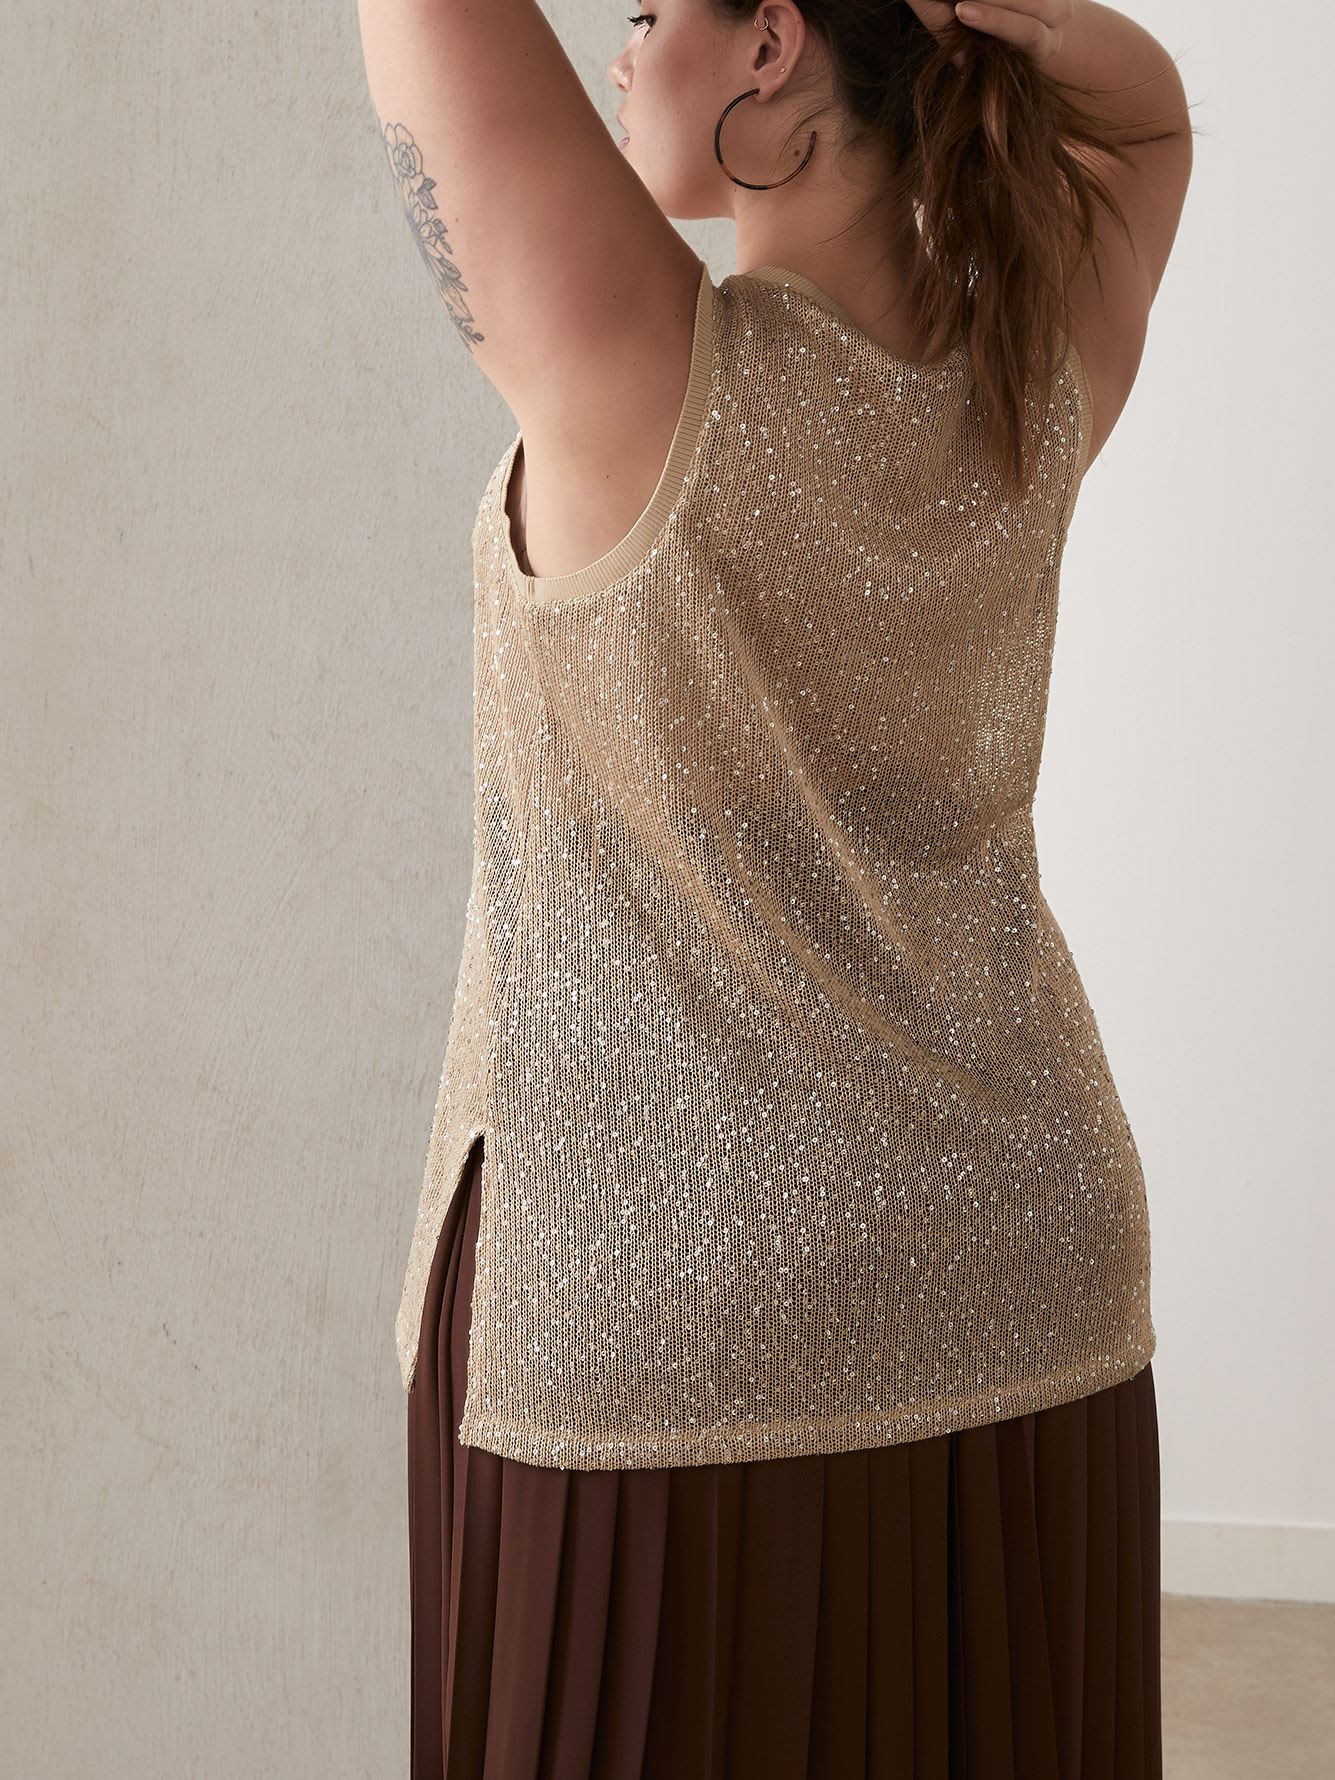 Open-Knit Scoop-Neck Cami with Sequin Details